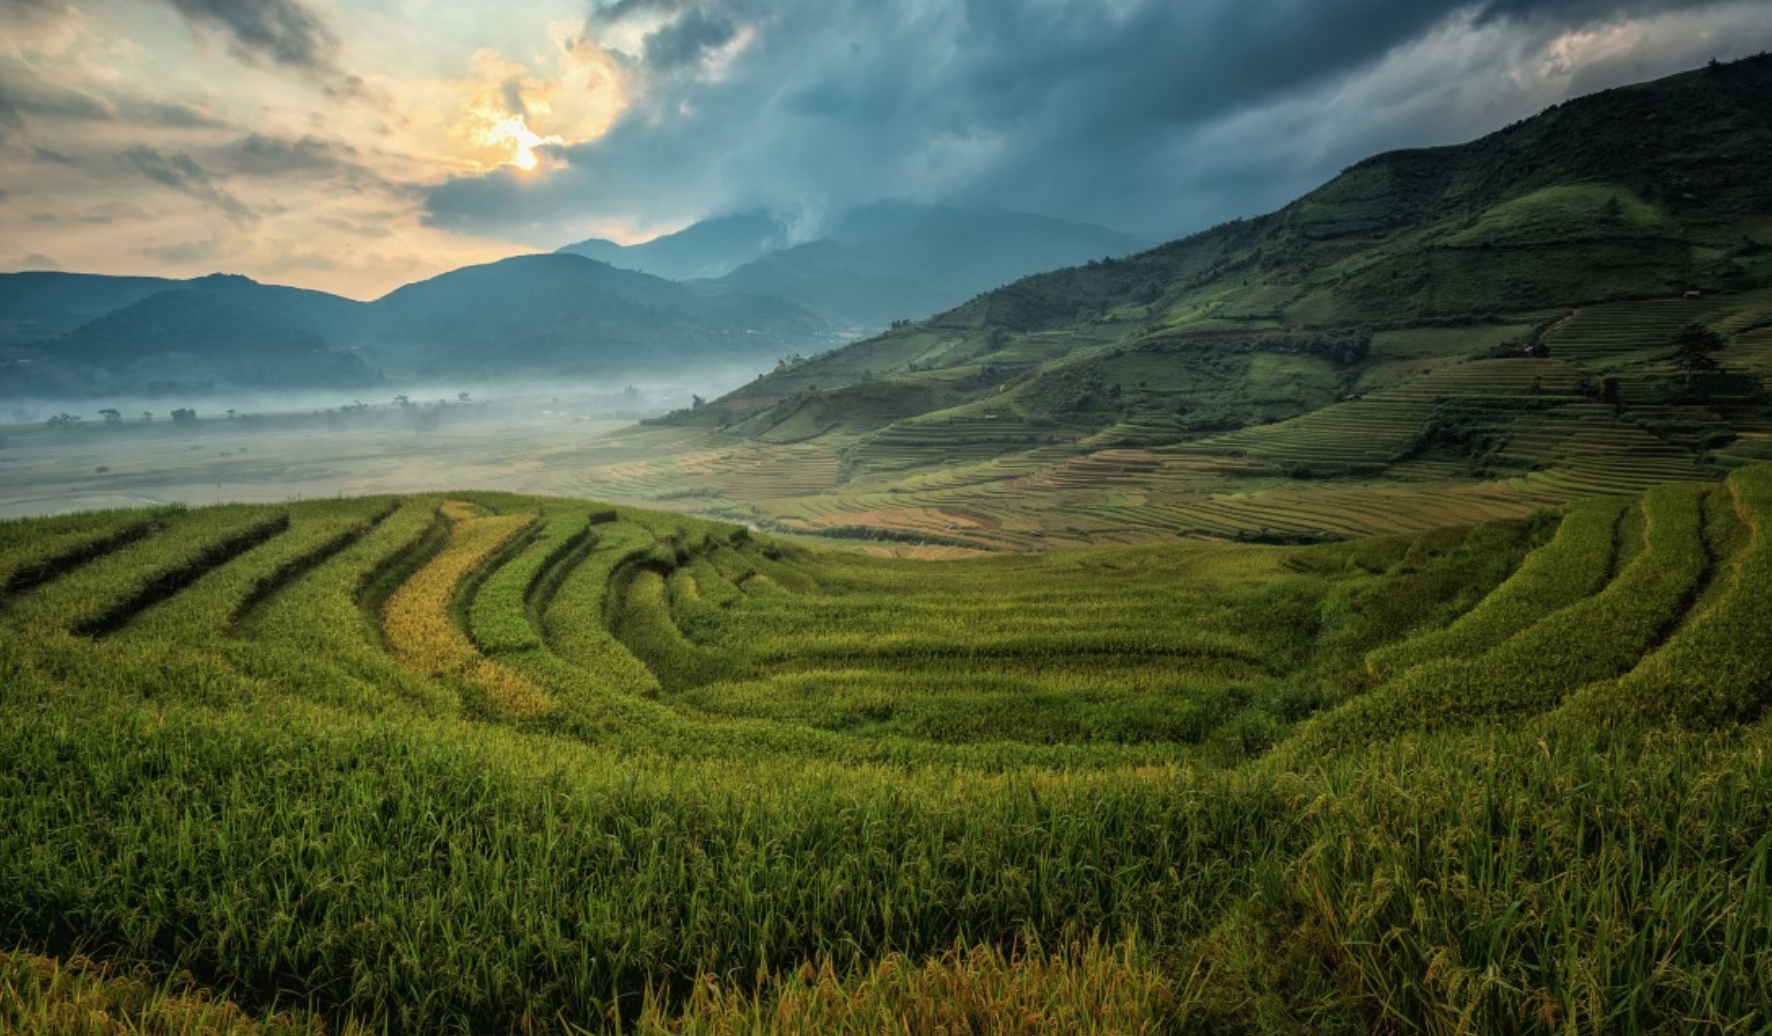 rice fields where agrohomeopathy is increasingly called for